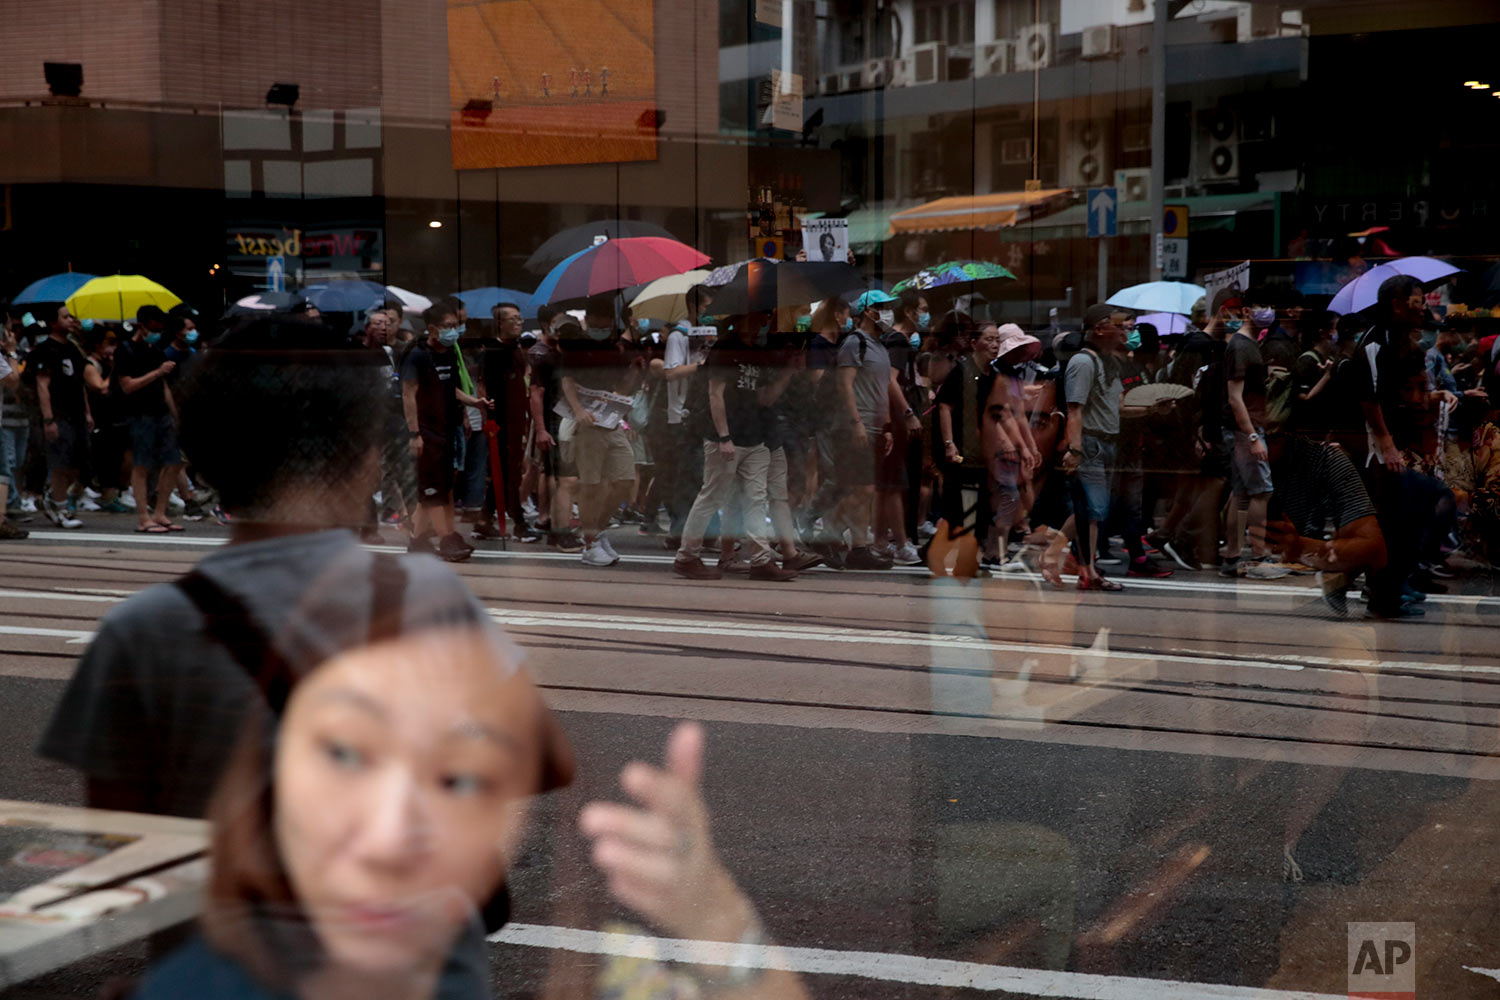 Protesters are reflected on a window as they march during a pro-democracy protest in Wan Chai, Hong Kong, Aug. 31, 2019. (AP Photo/Jae C. Hong)